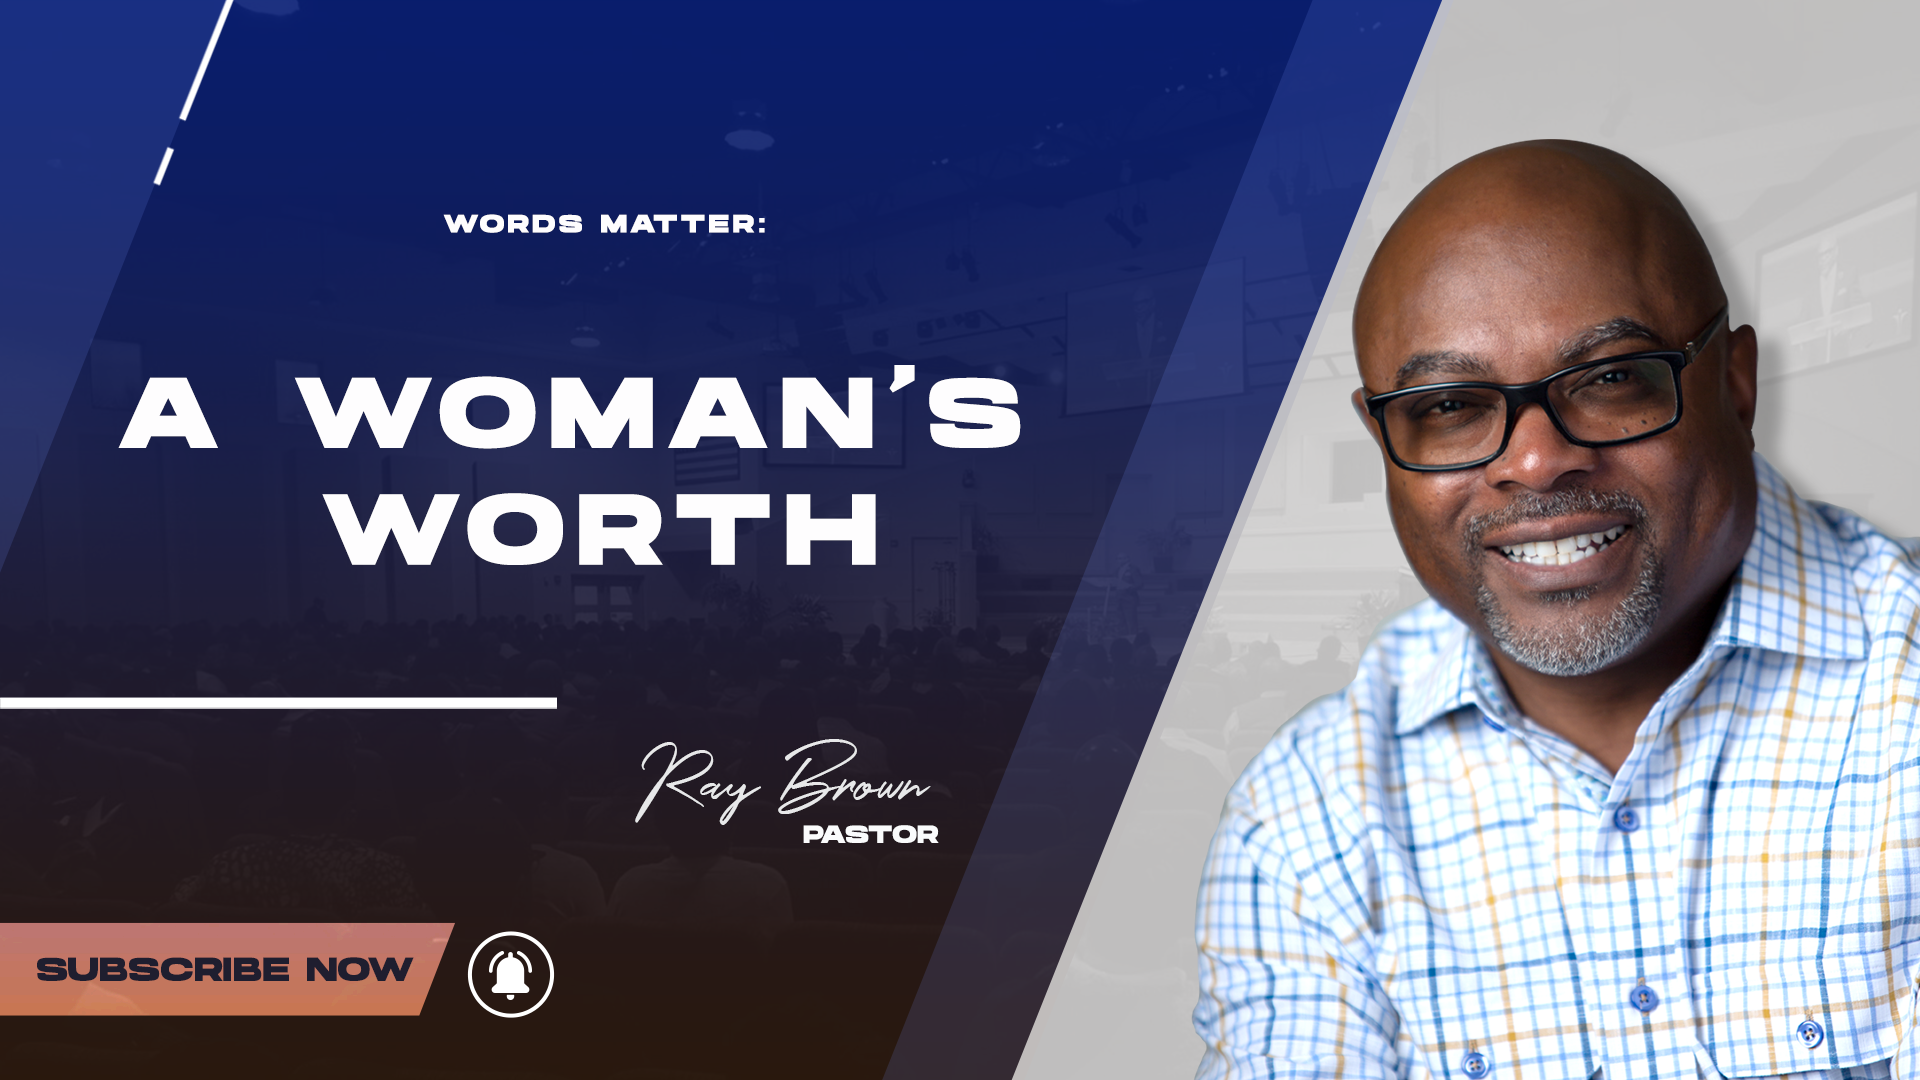 032121 A WOMAN'S WORTH